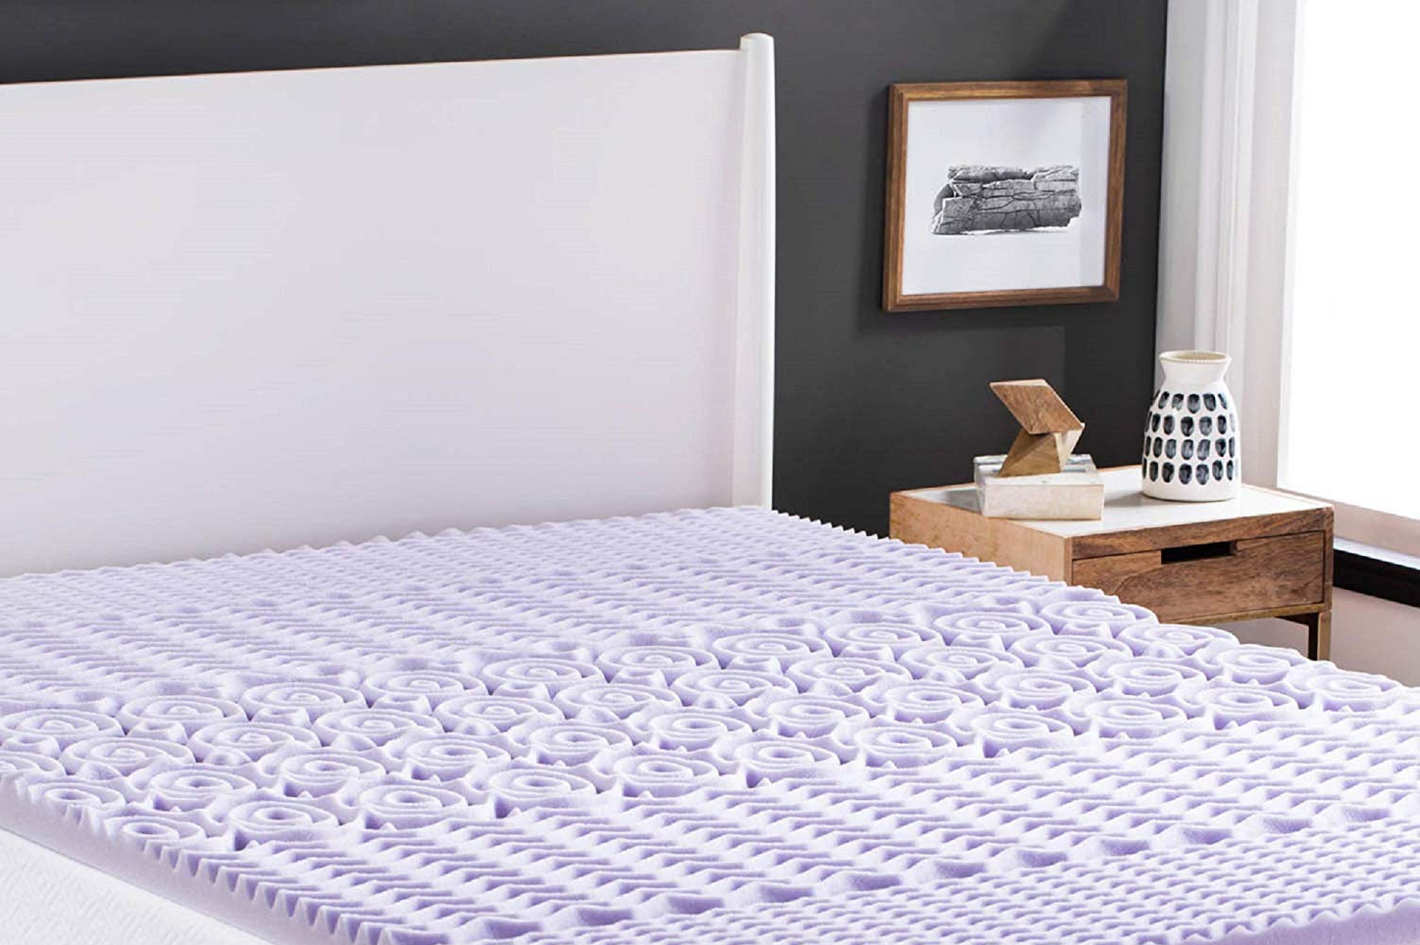 Wool Mattress Pad Reviews Lucid 2 Inch 5 Zone Lavender Memory Foam Mattress Topper